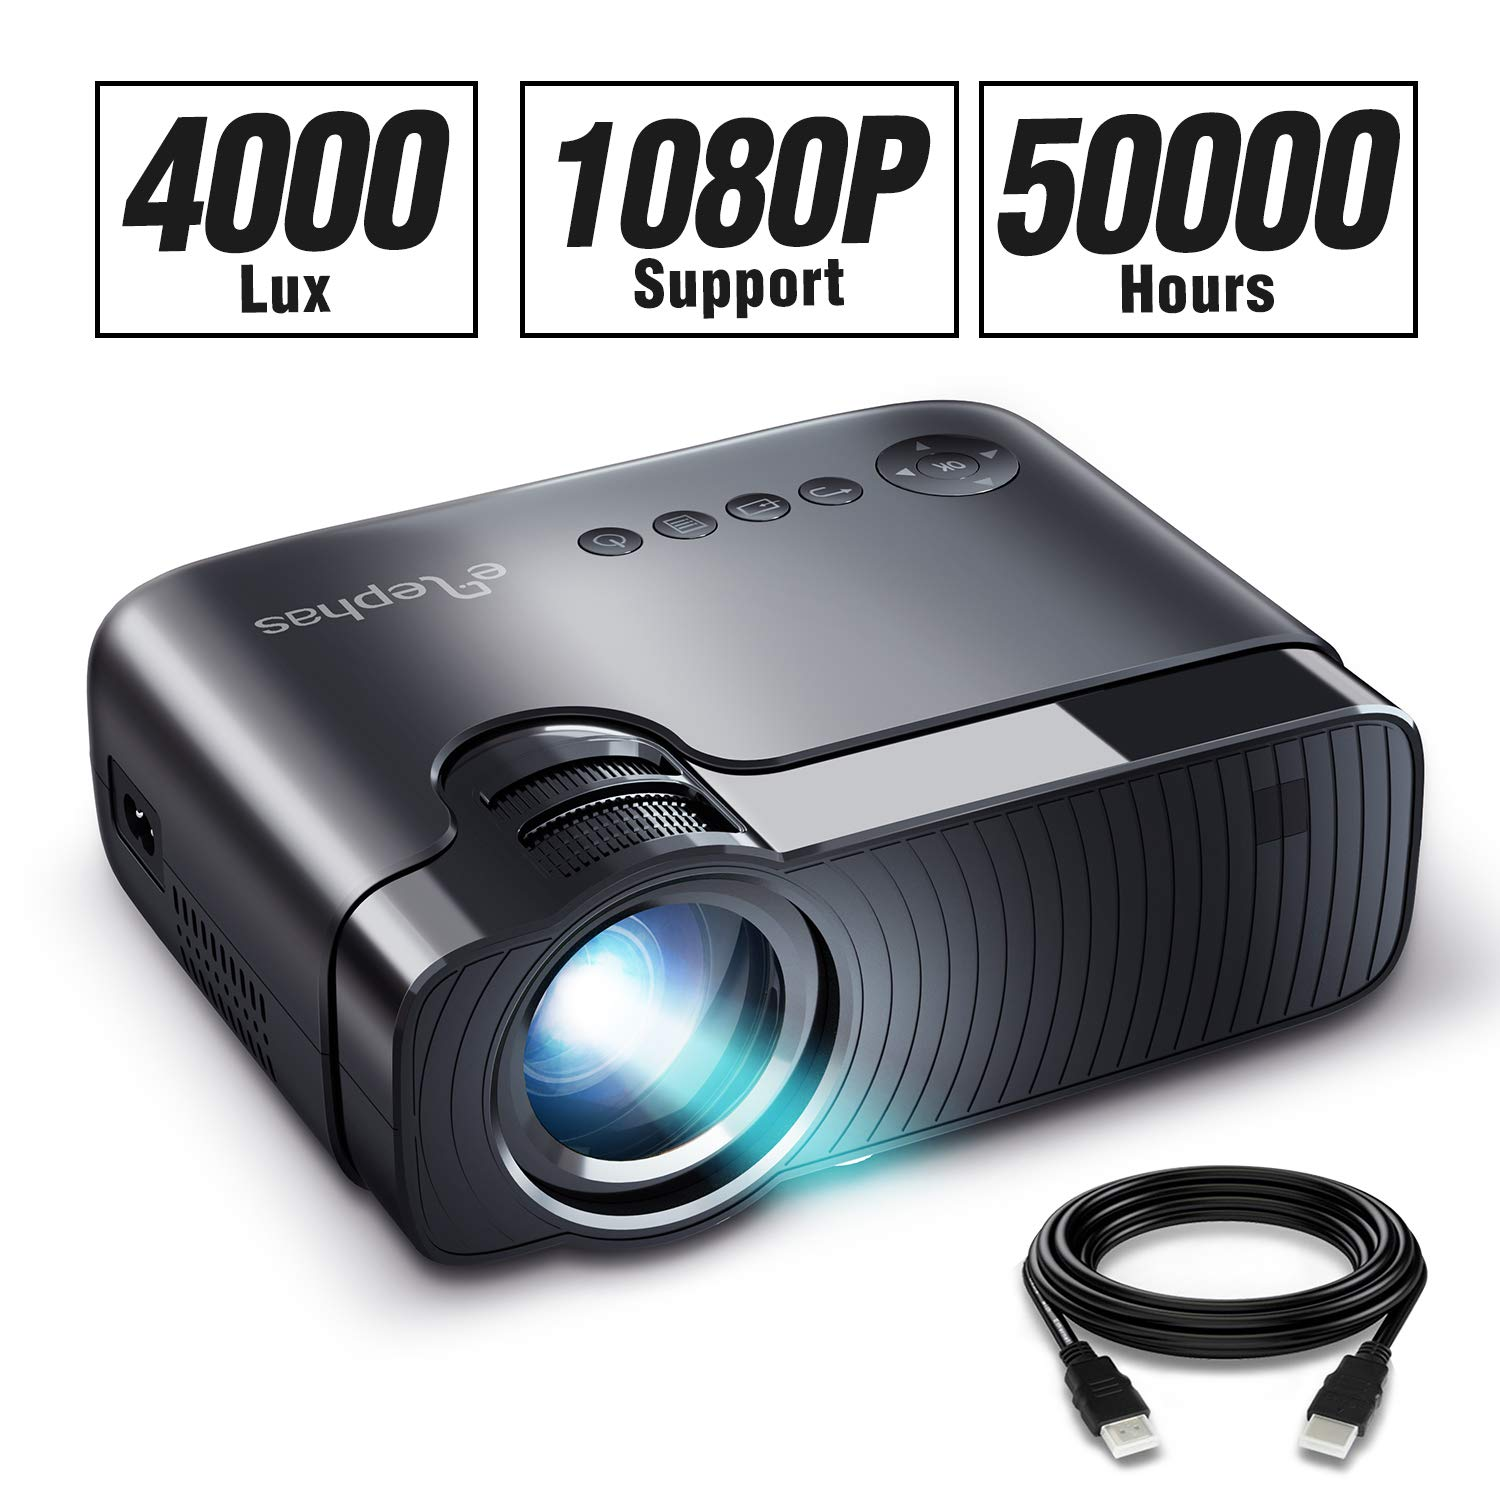 ELEPHAS Projector Portable Compatible Interfaces